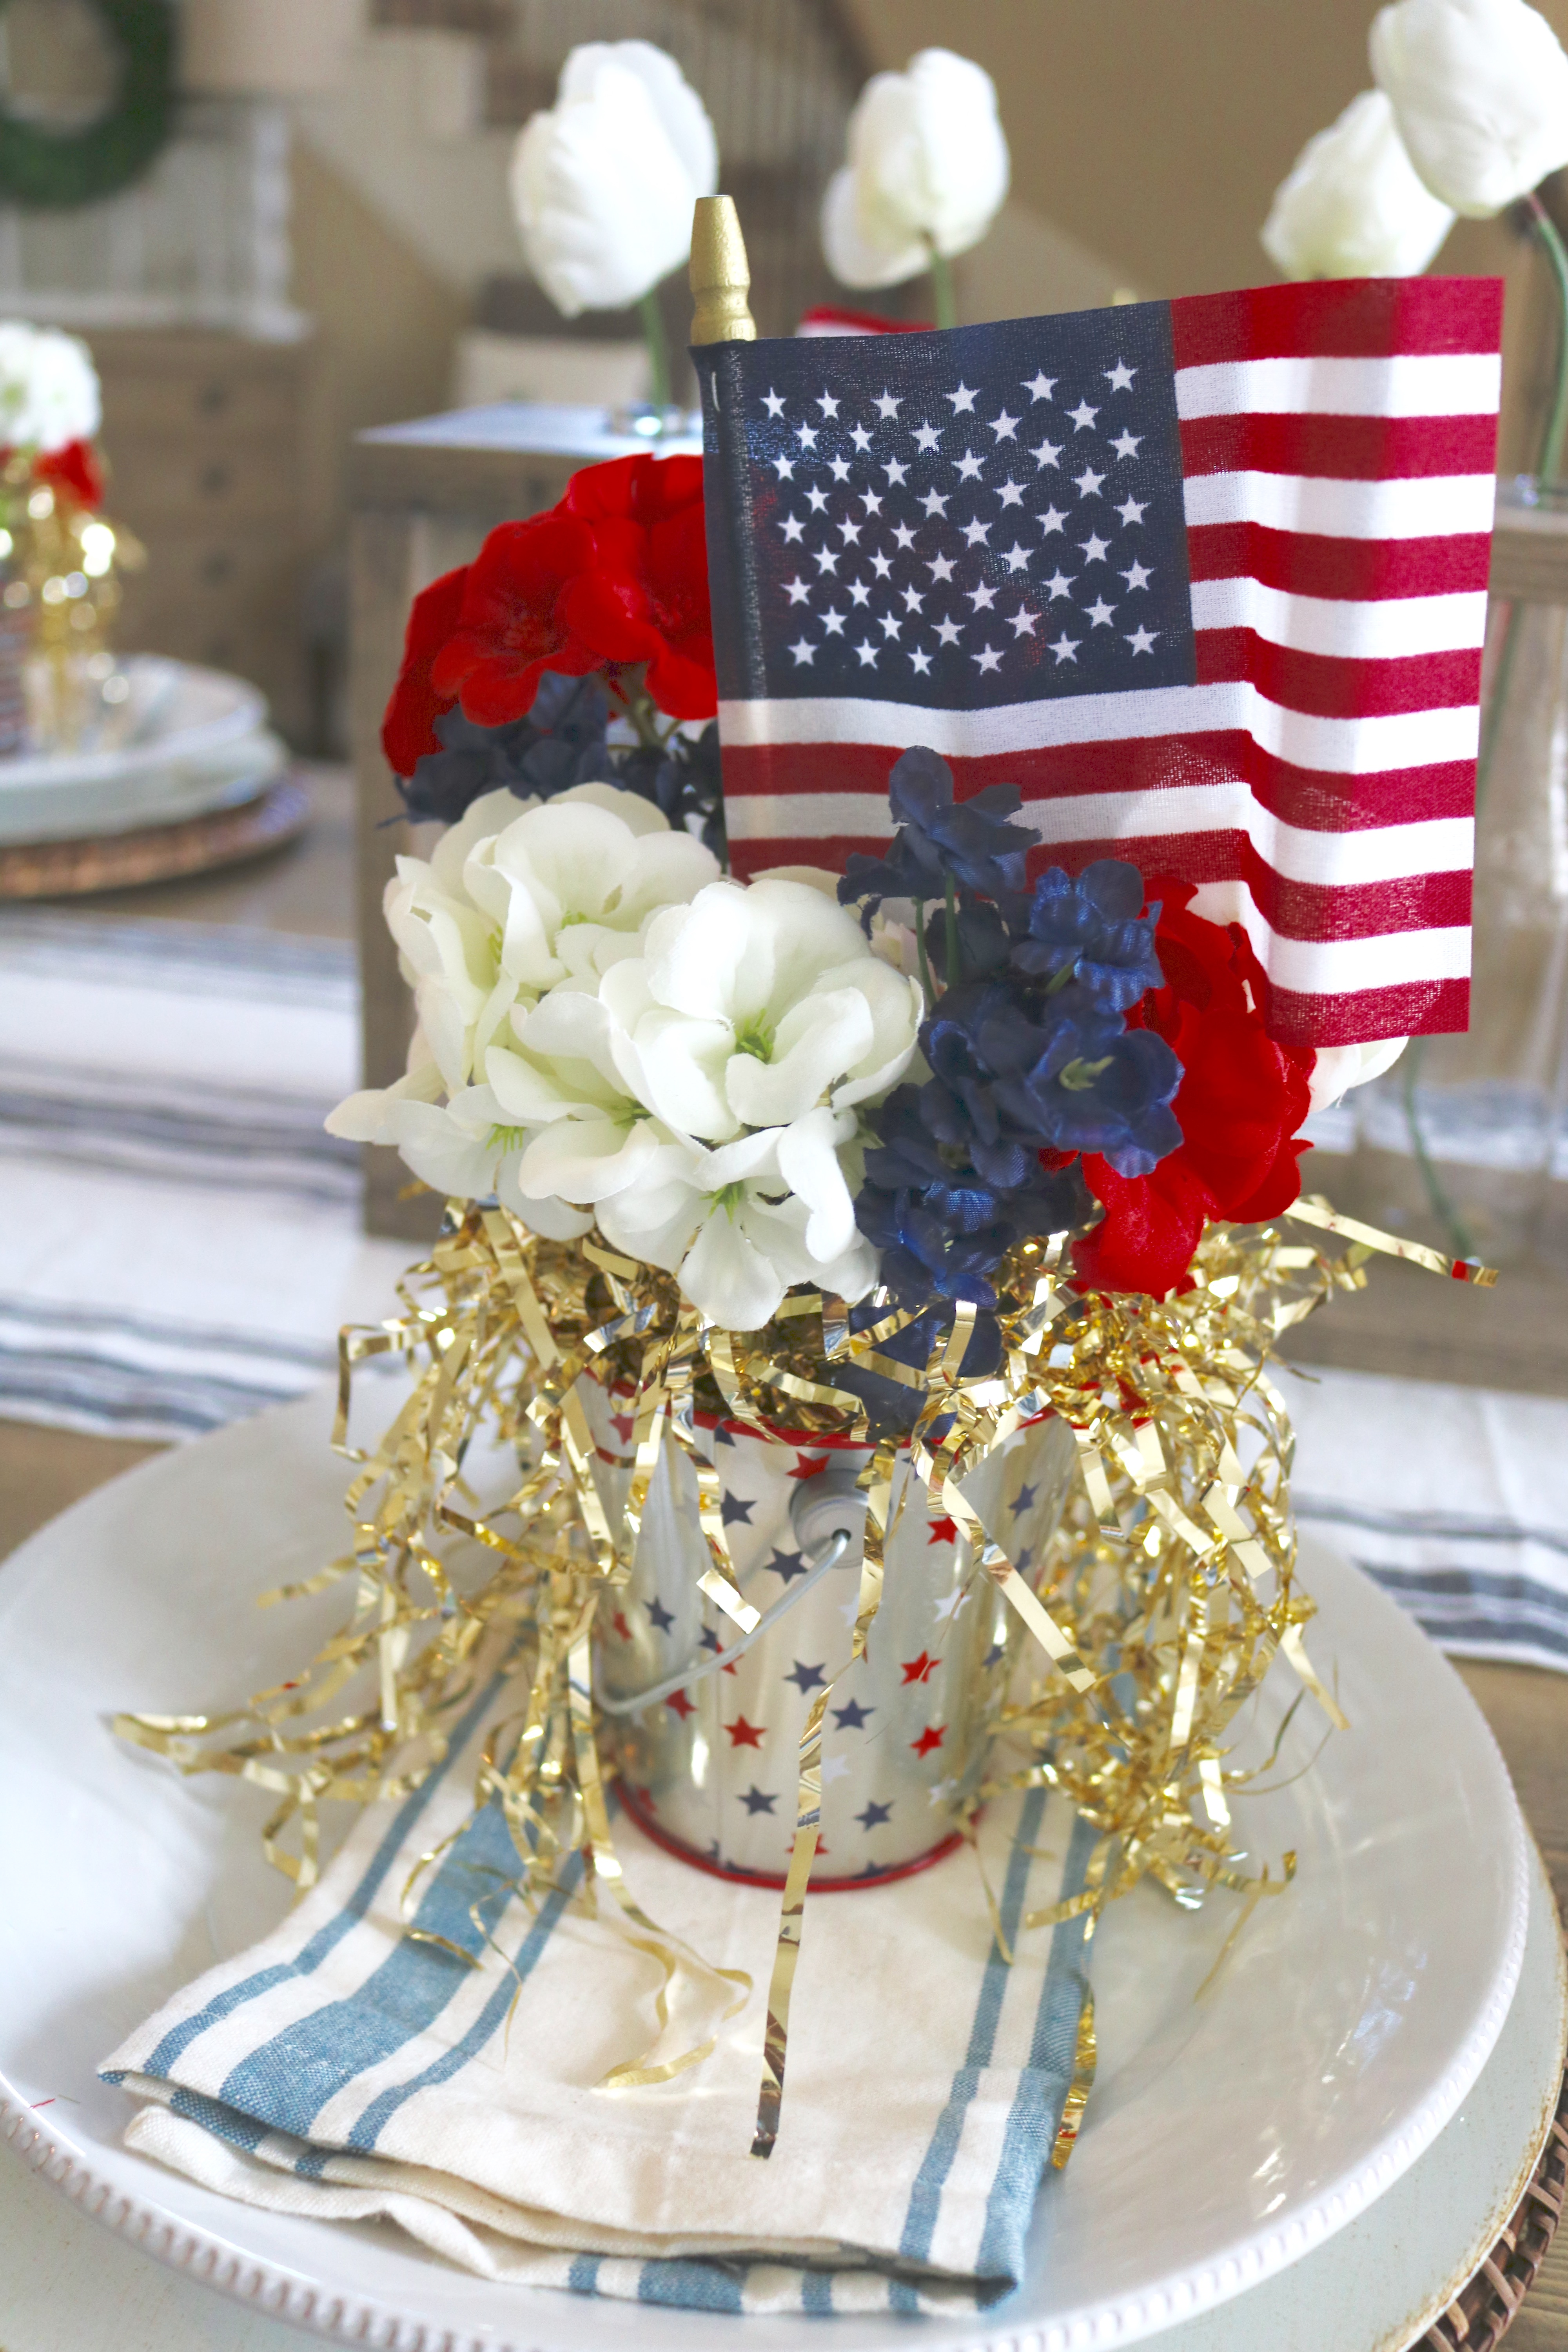 Fourth of July Tablescape - #Tablscape #4thofjuly #homedecor